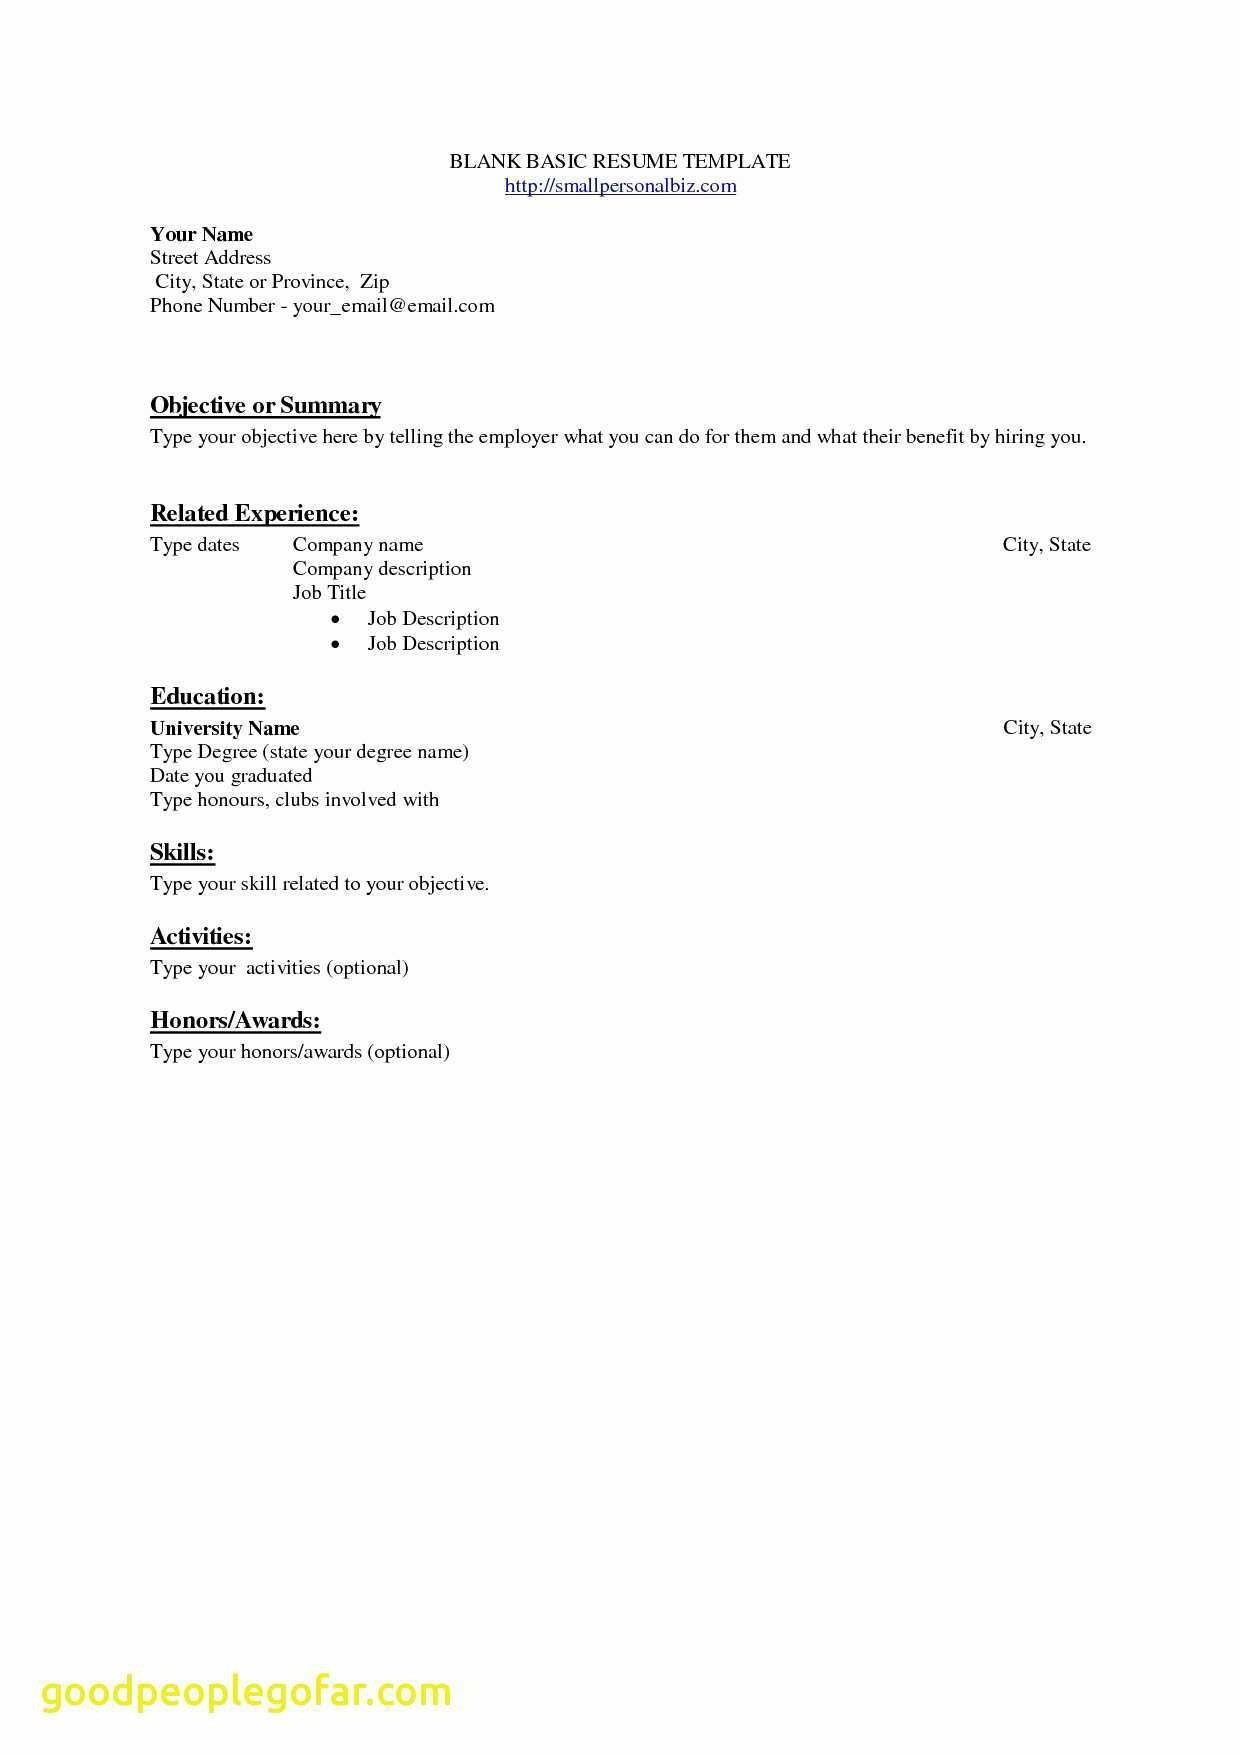 What Should My Resume Look Like - What Should My Resume Look Like Inspirational Luxury What Should A